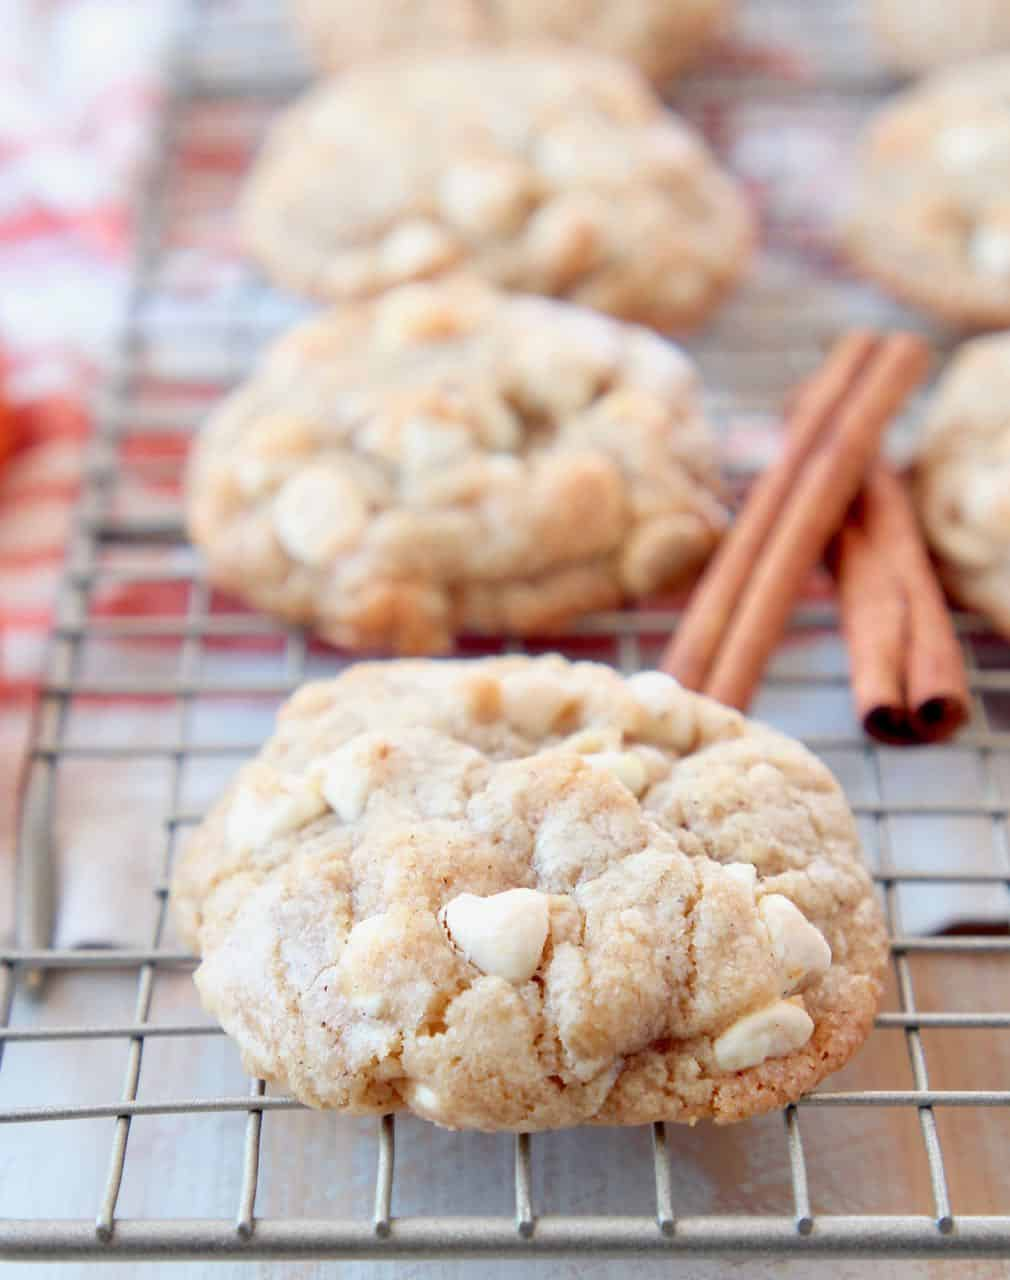 White chocolate chip cookies on wire baking rack with cinnamon sticks